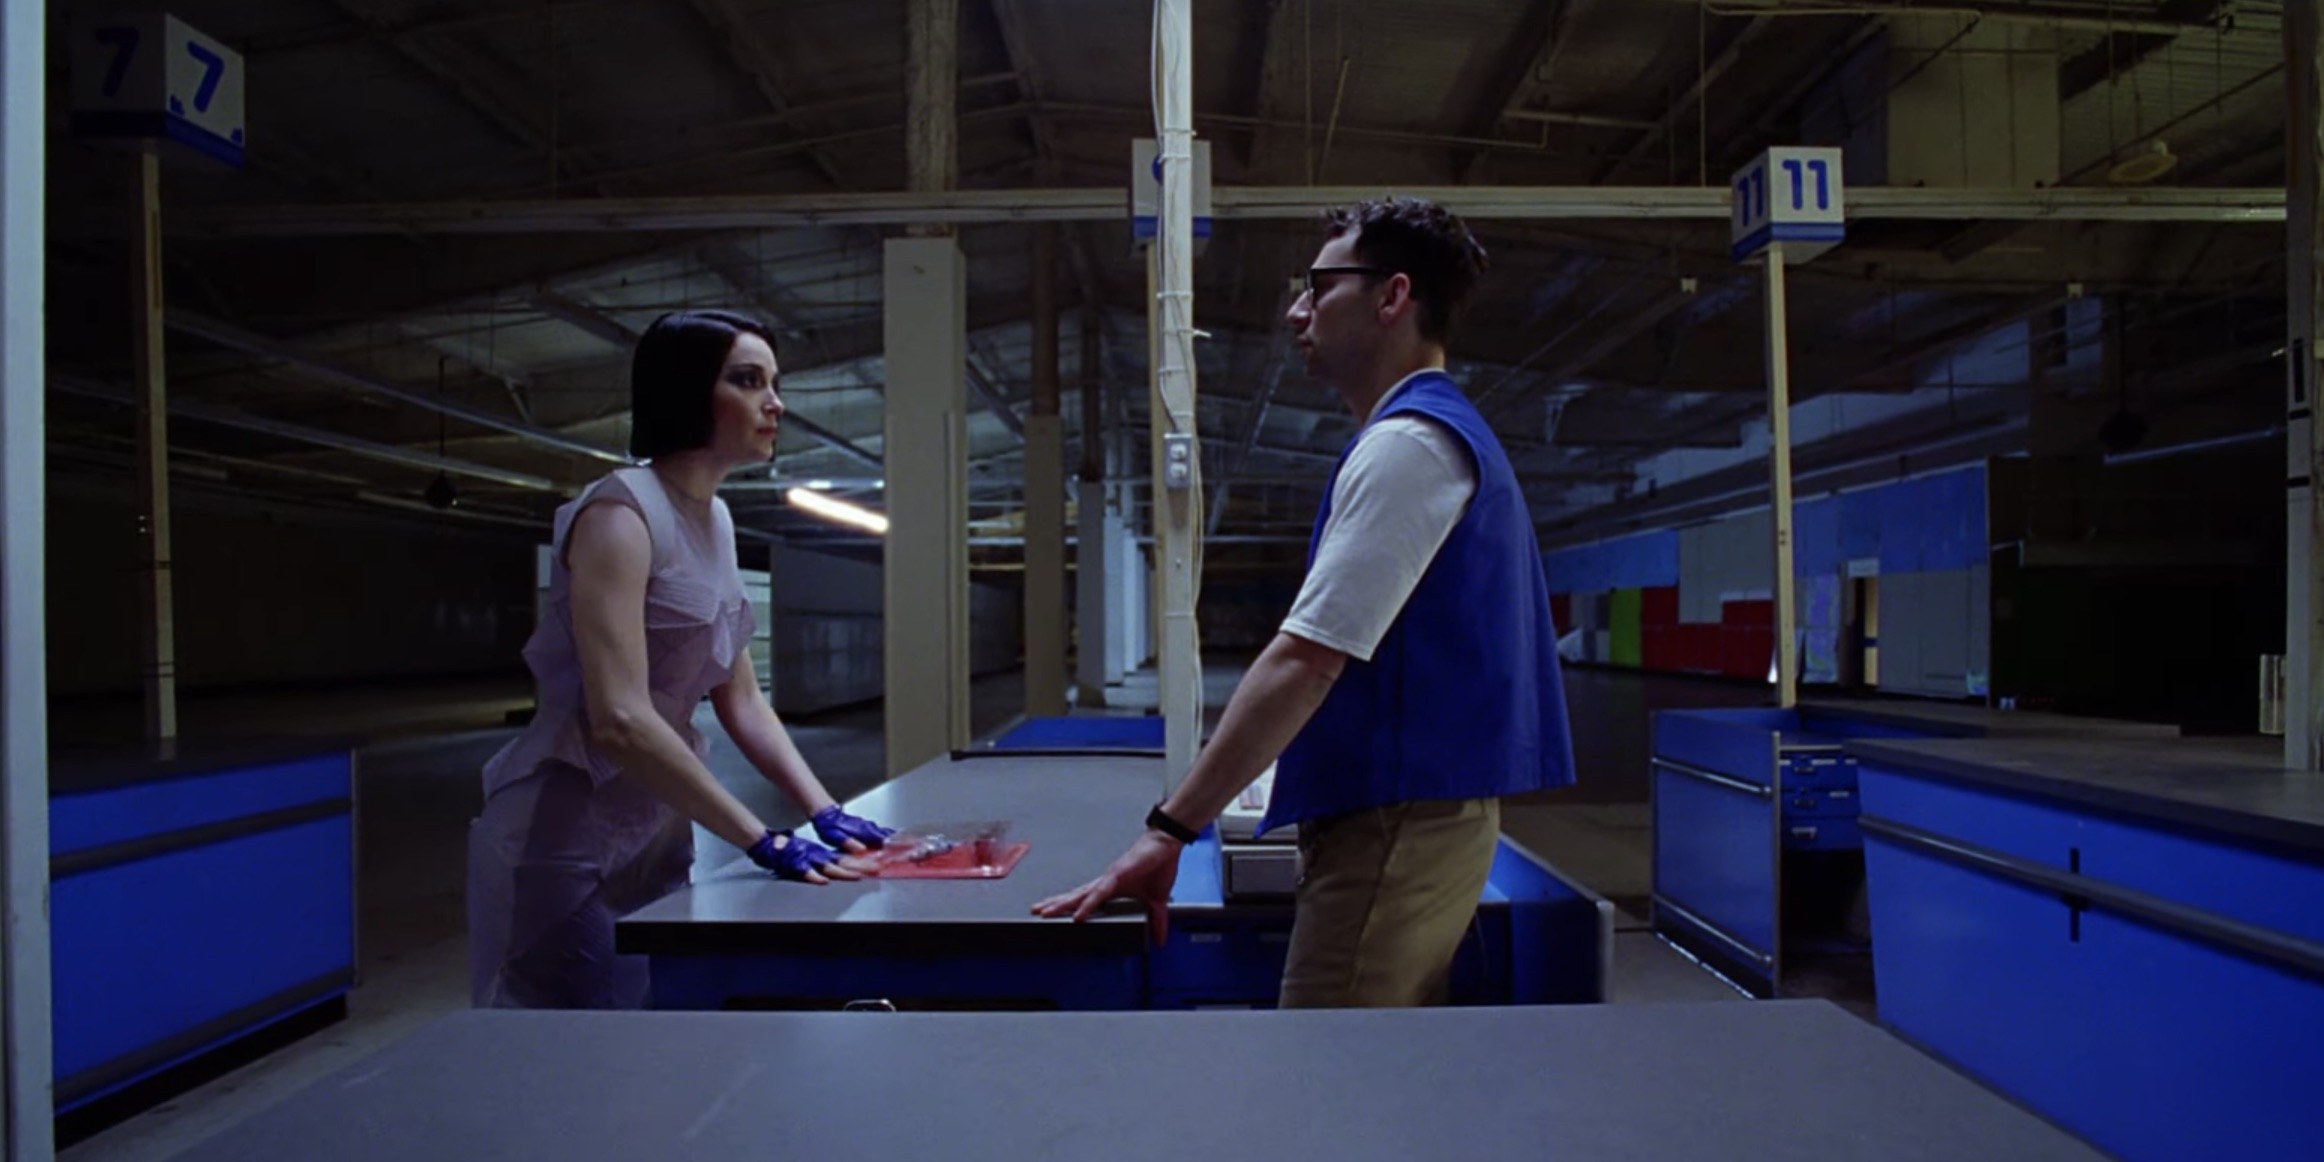 St. Vincent Stars in Video From Jack Antonoff's New Band: Watch